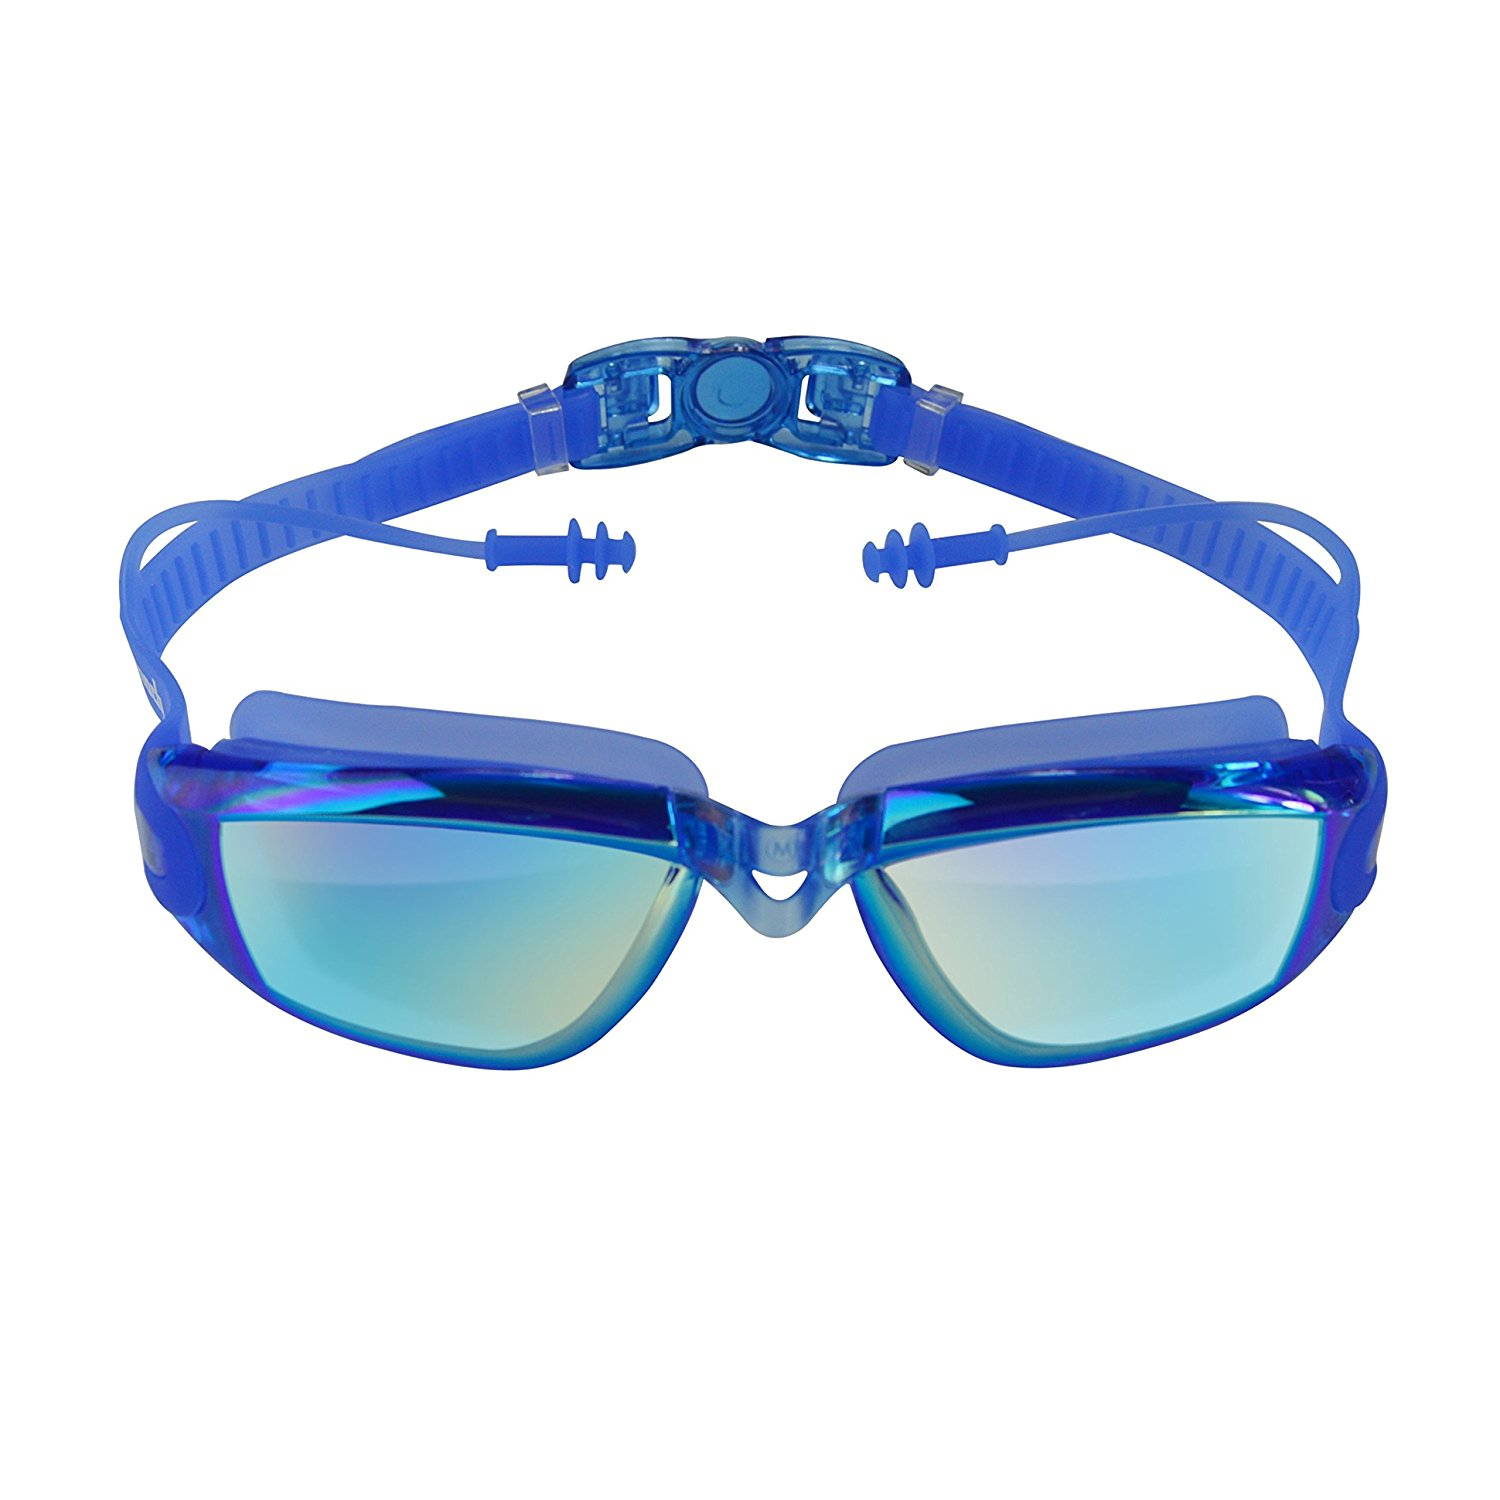 Swimming Goggles, IPOW UV Protection No Leaking Anti Fog Triathlon Swim Goggles with Ear Plugs for Adult, Men, Women, Youth, Kids, Blue